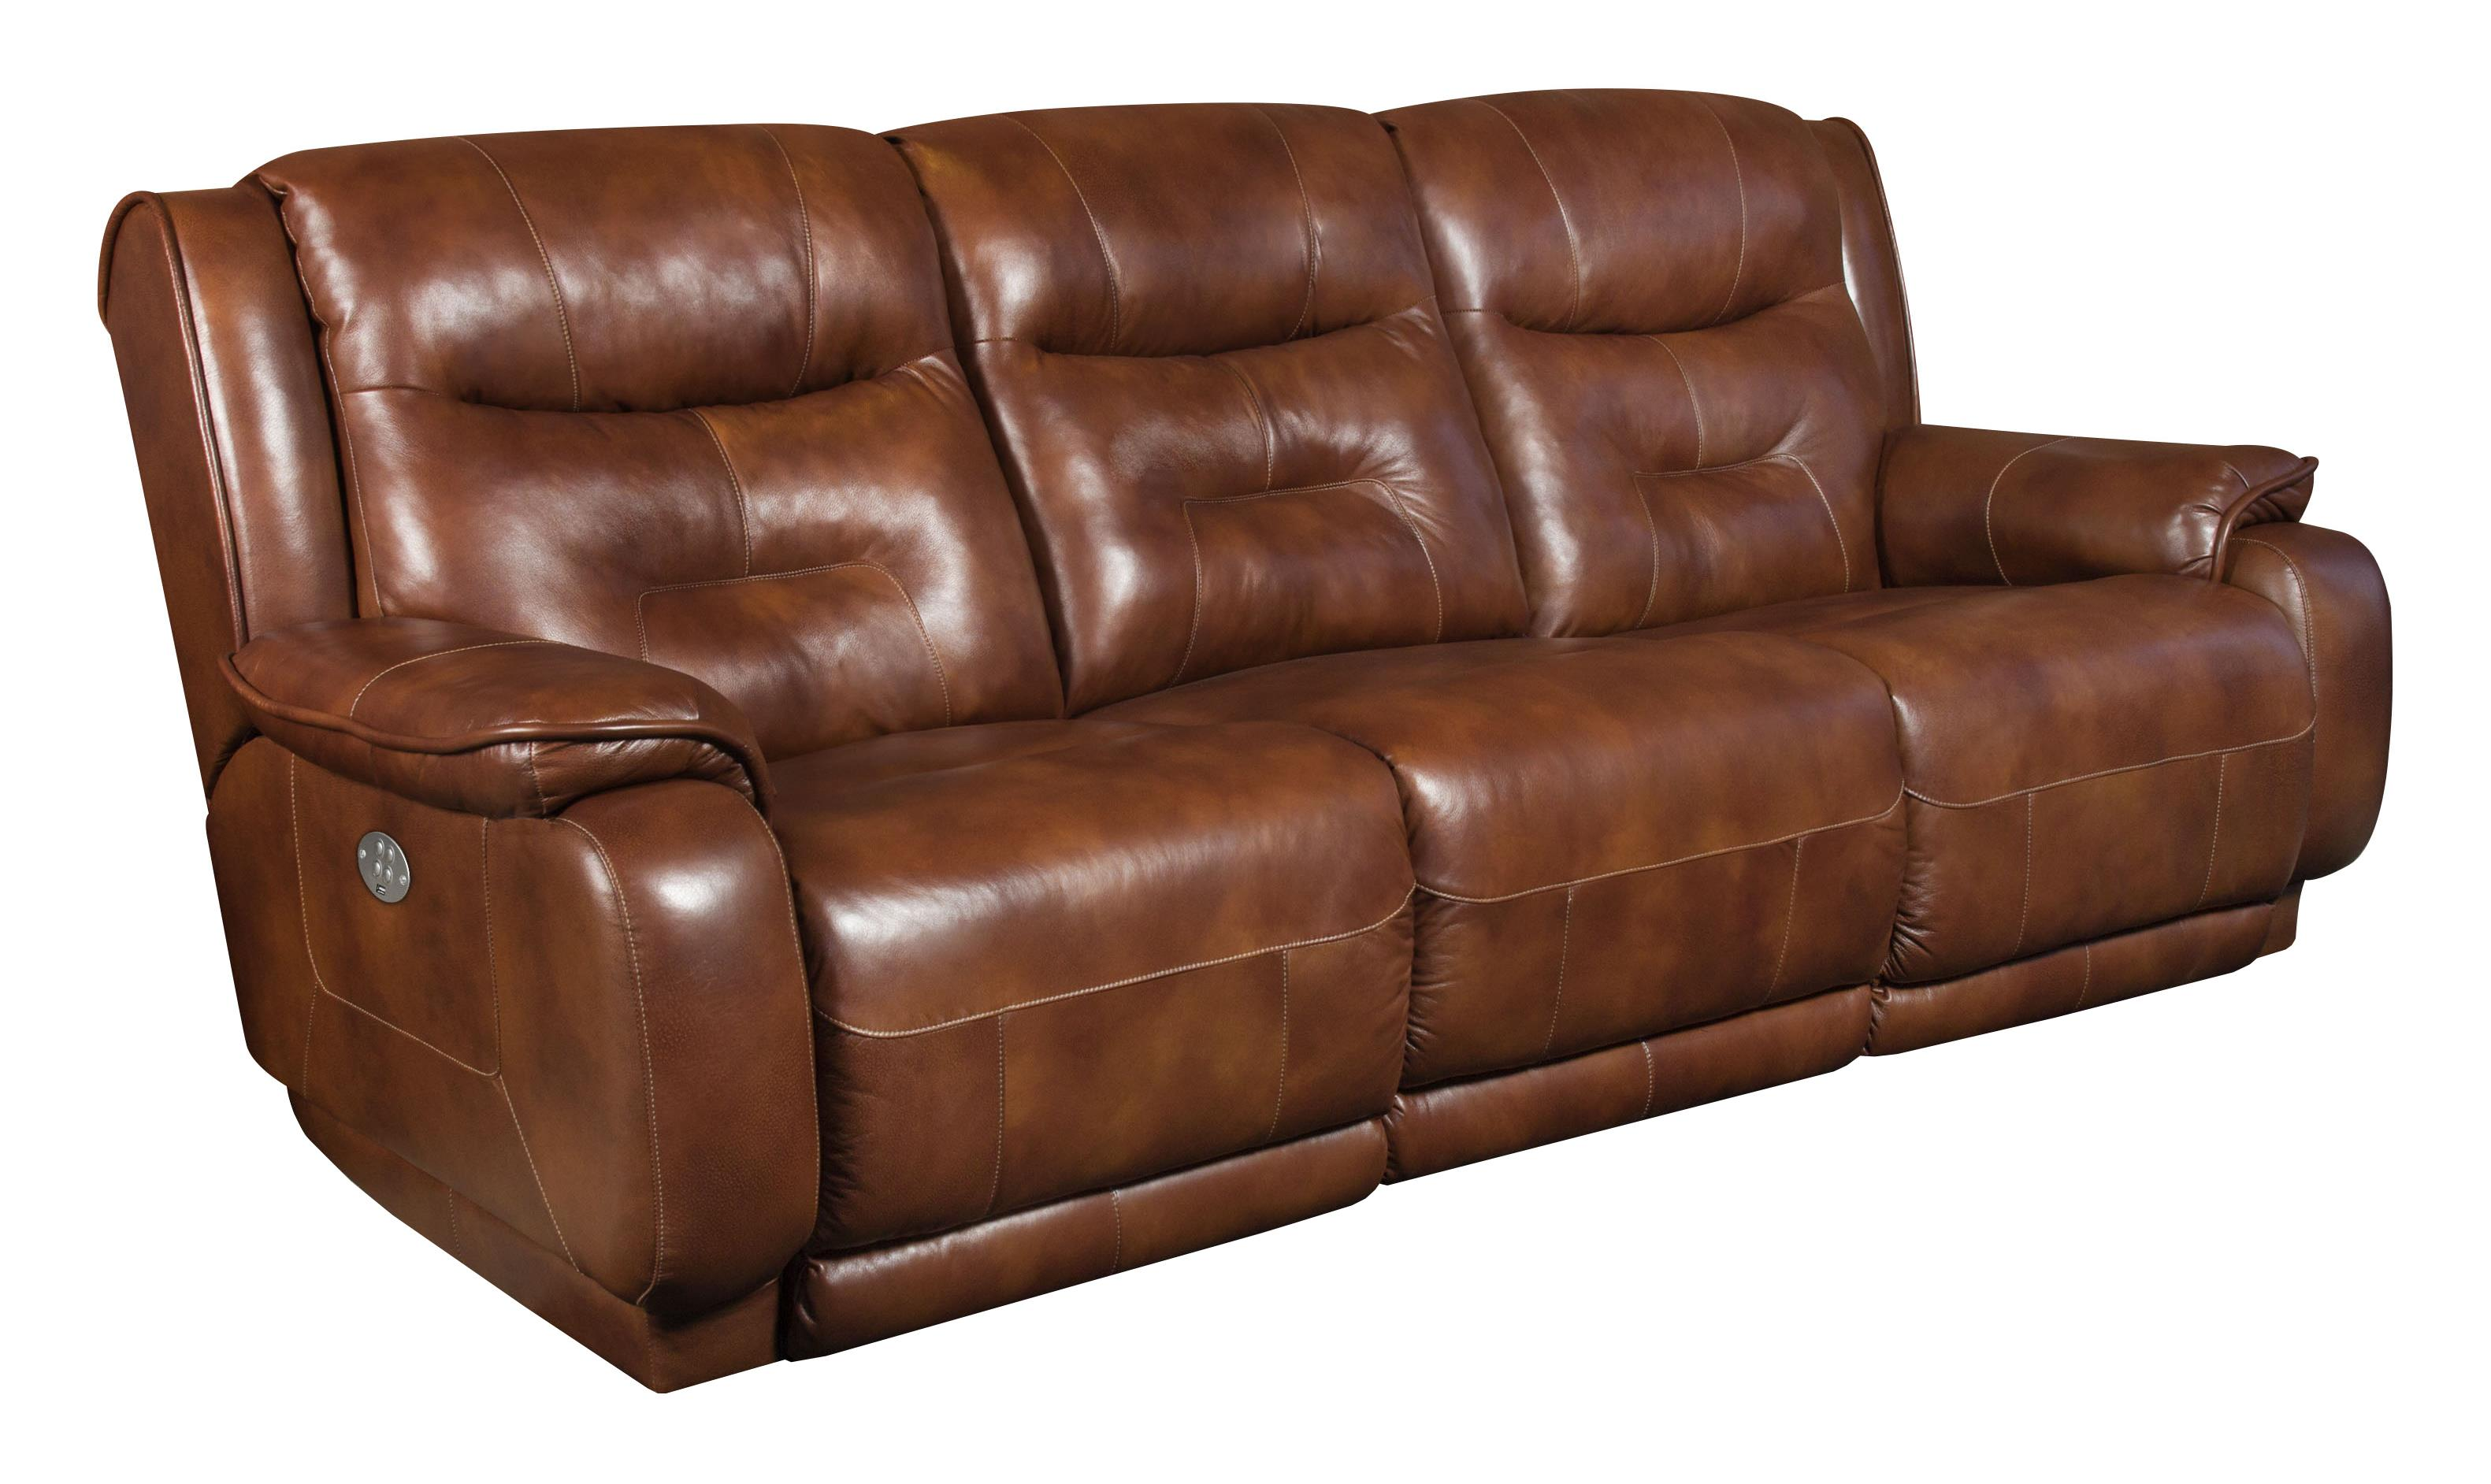 Southern Motion Crescent Double Reclining Sofa - Item Number: 874-31-906-21